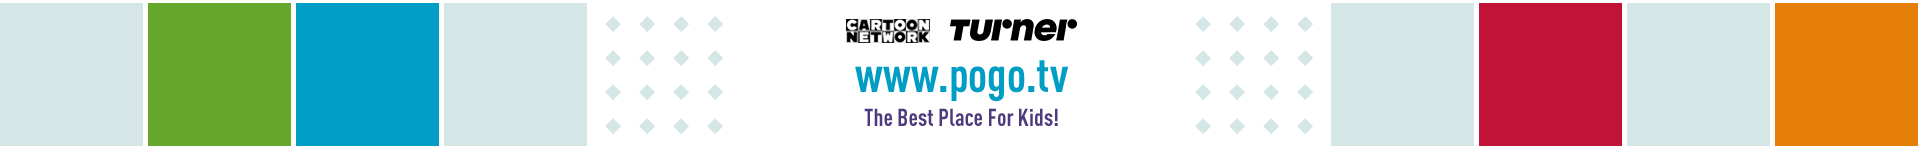 POGO TV - Best Place for Kids